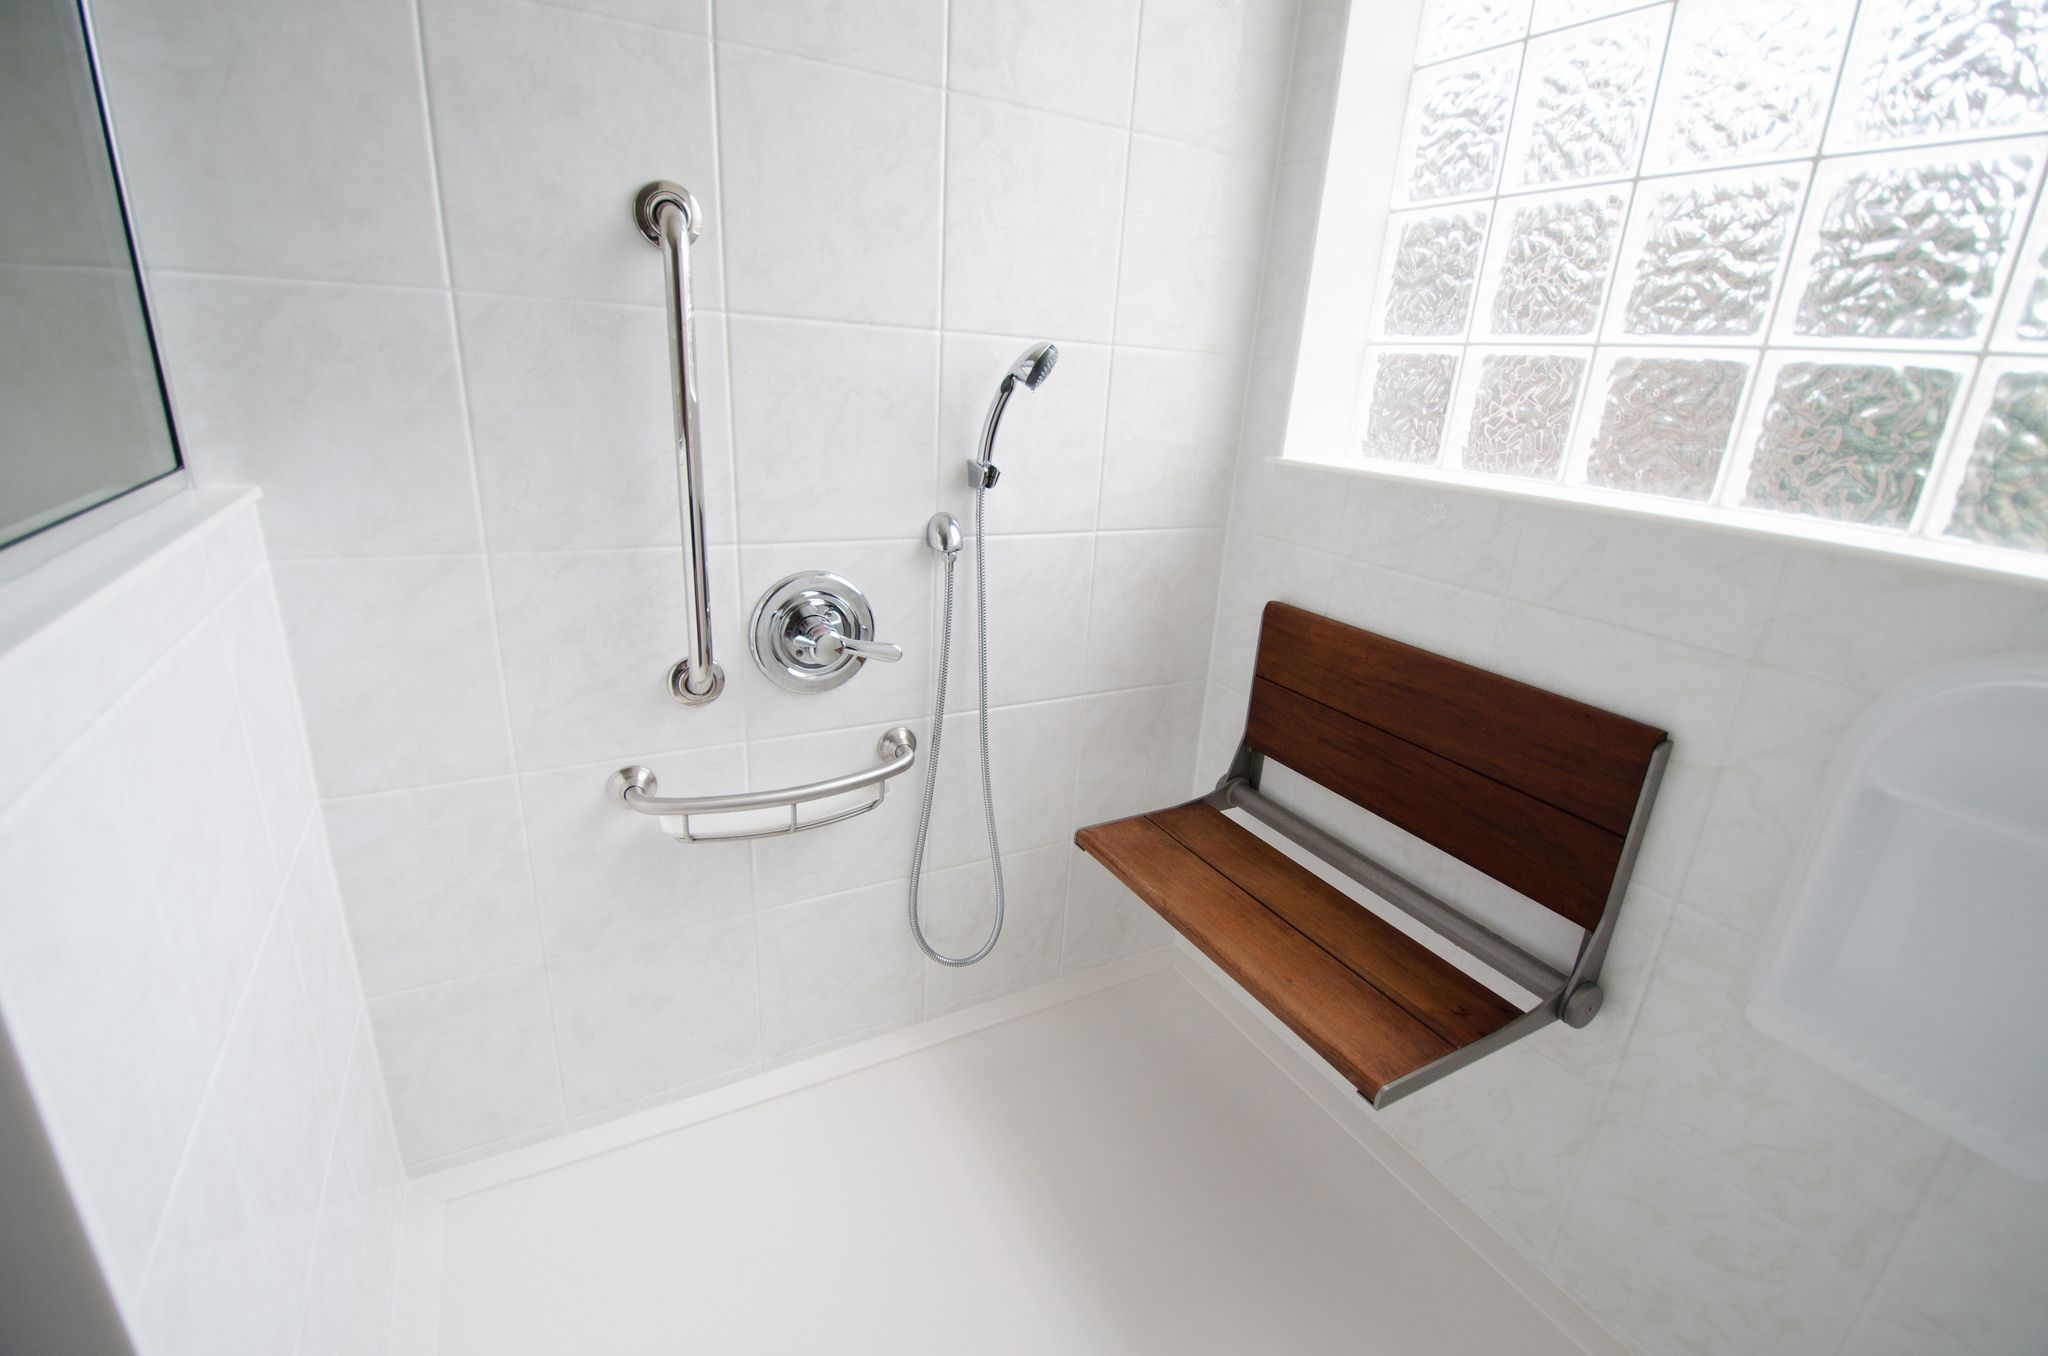 rh777 - after-0398 | Shower seat, Bath and Bath remodel